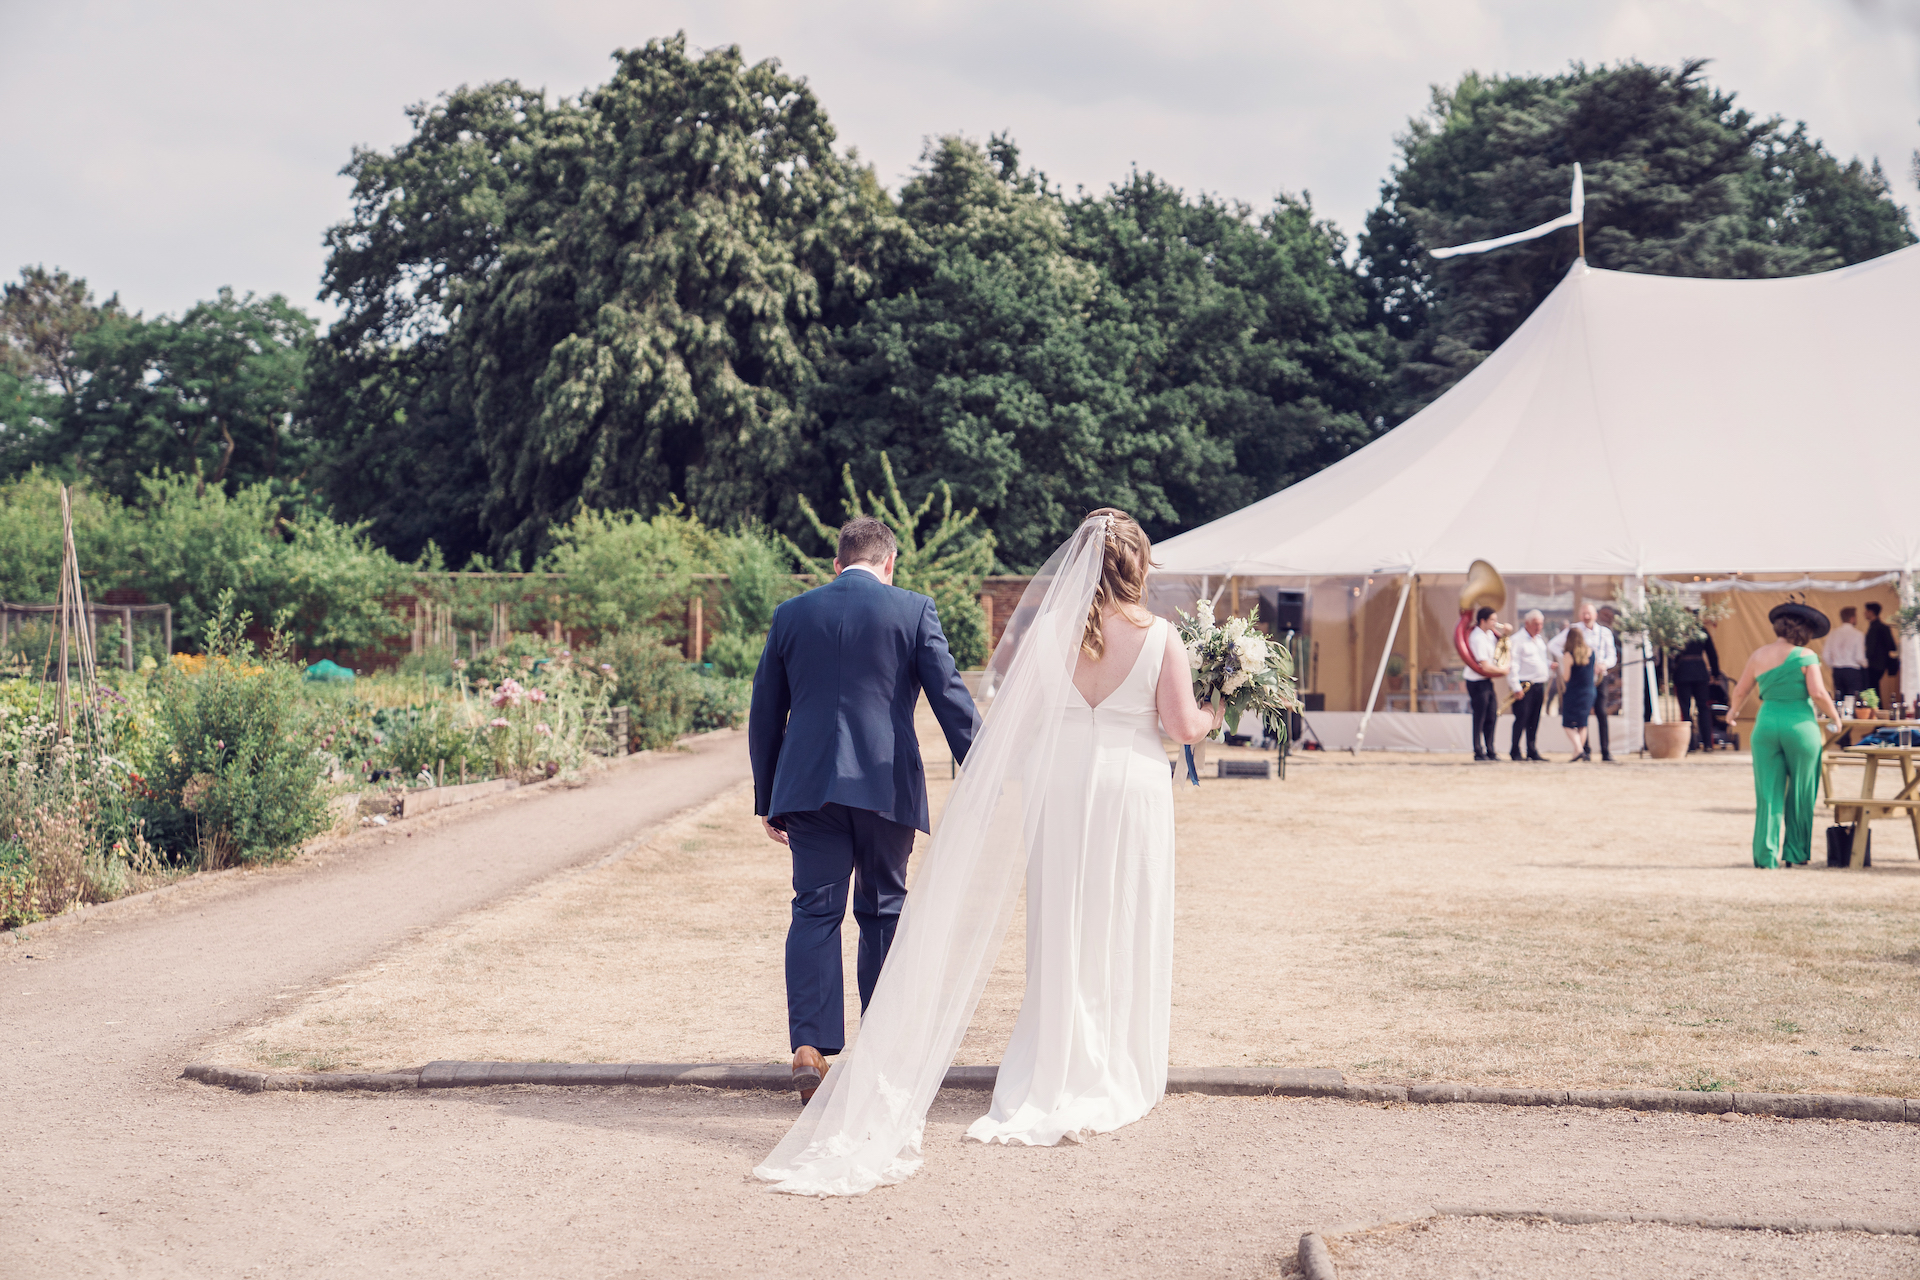 PapaKåta couple Louise & Alex's Sperry Wedding at Elford Hall Garden, Staffordshire captured by Jessica Raphael Photography- Bridal Style, Dress by Charlie Brear